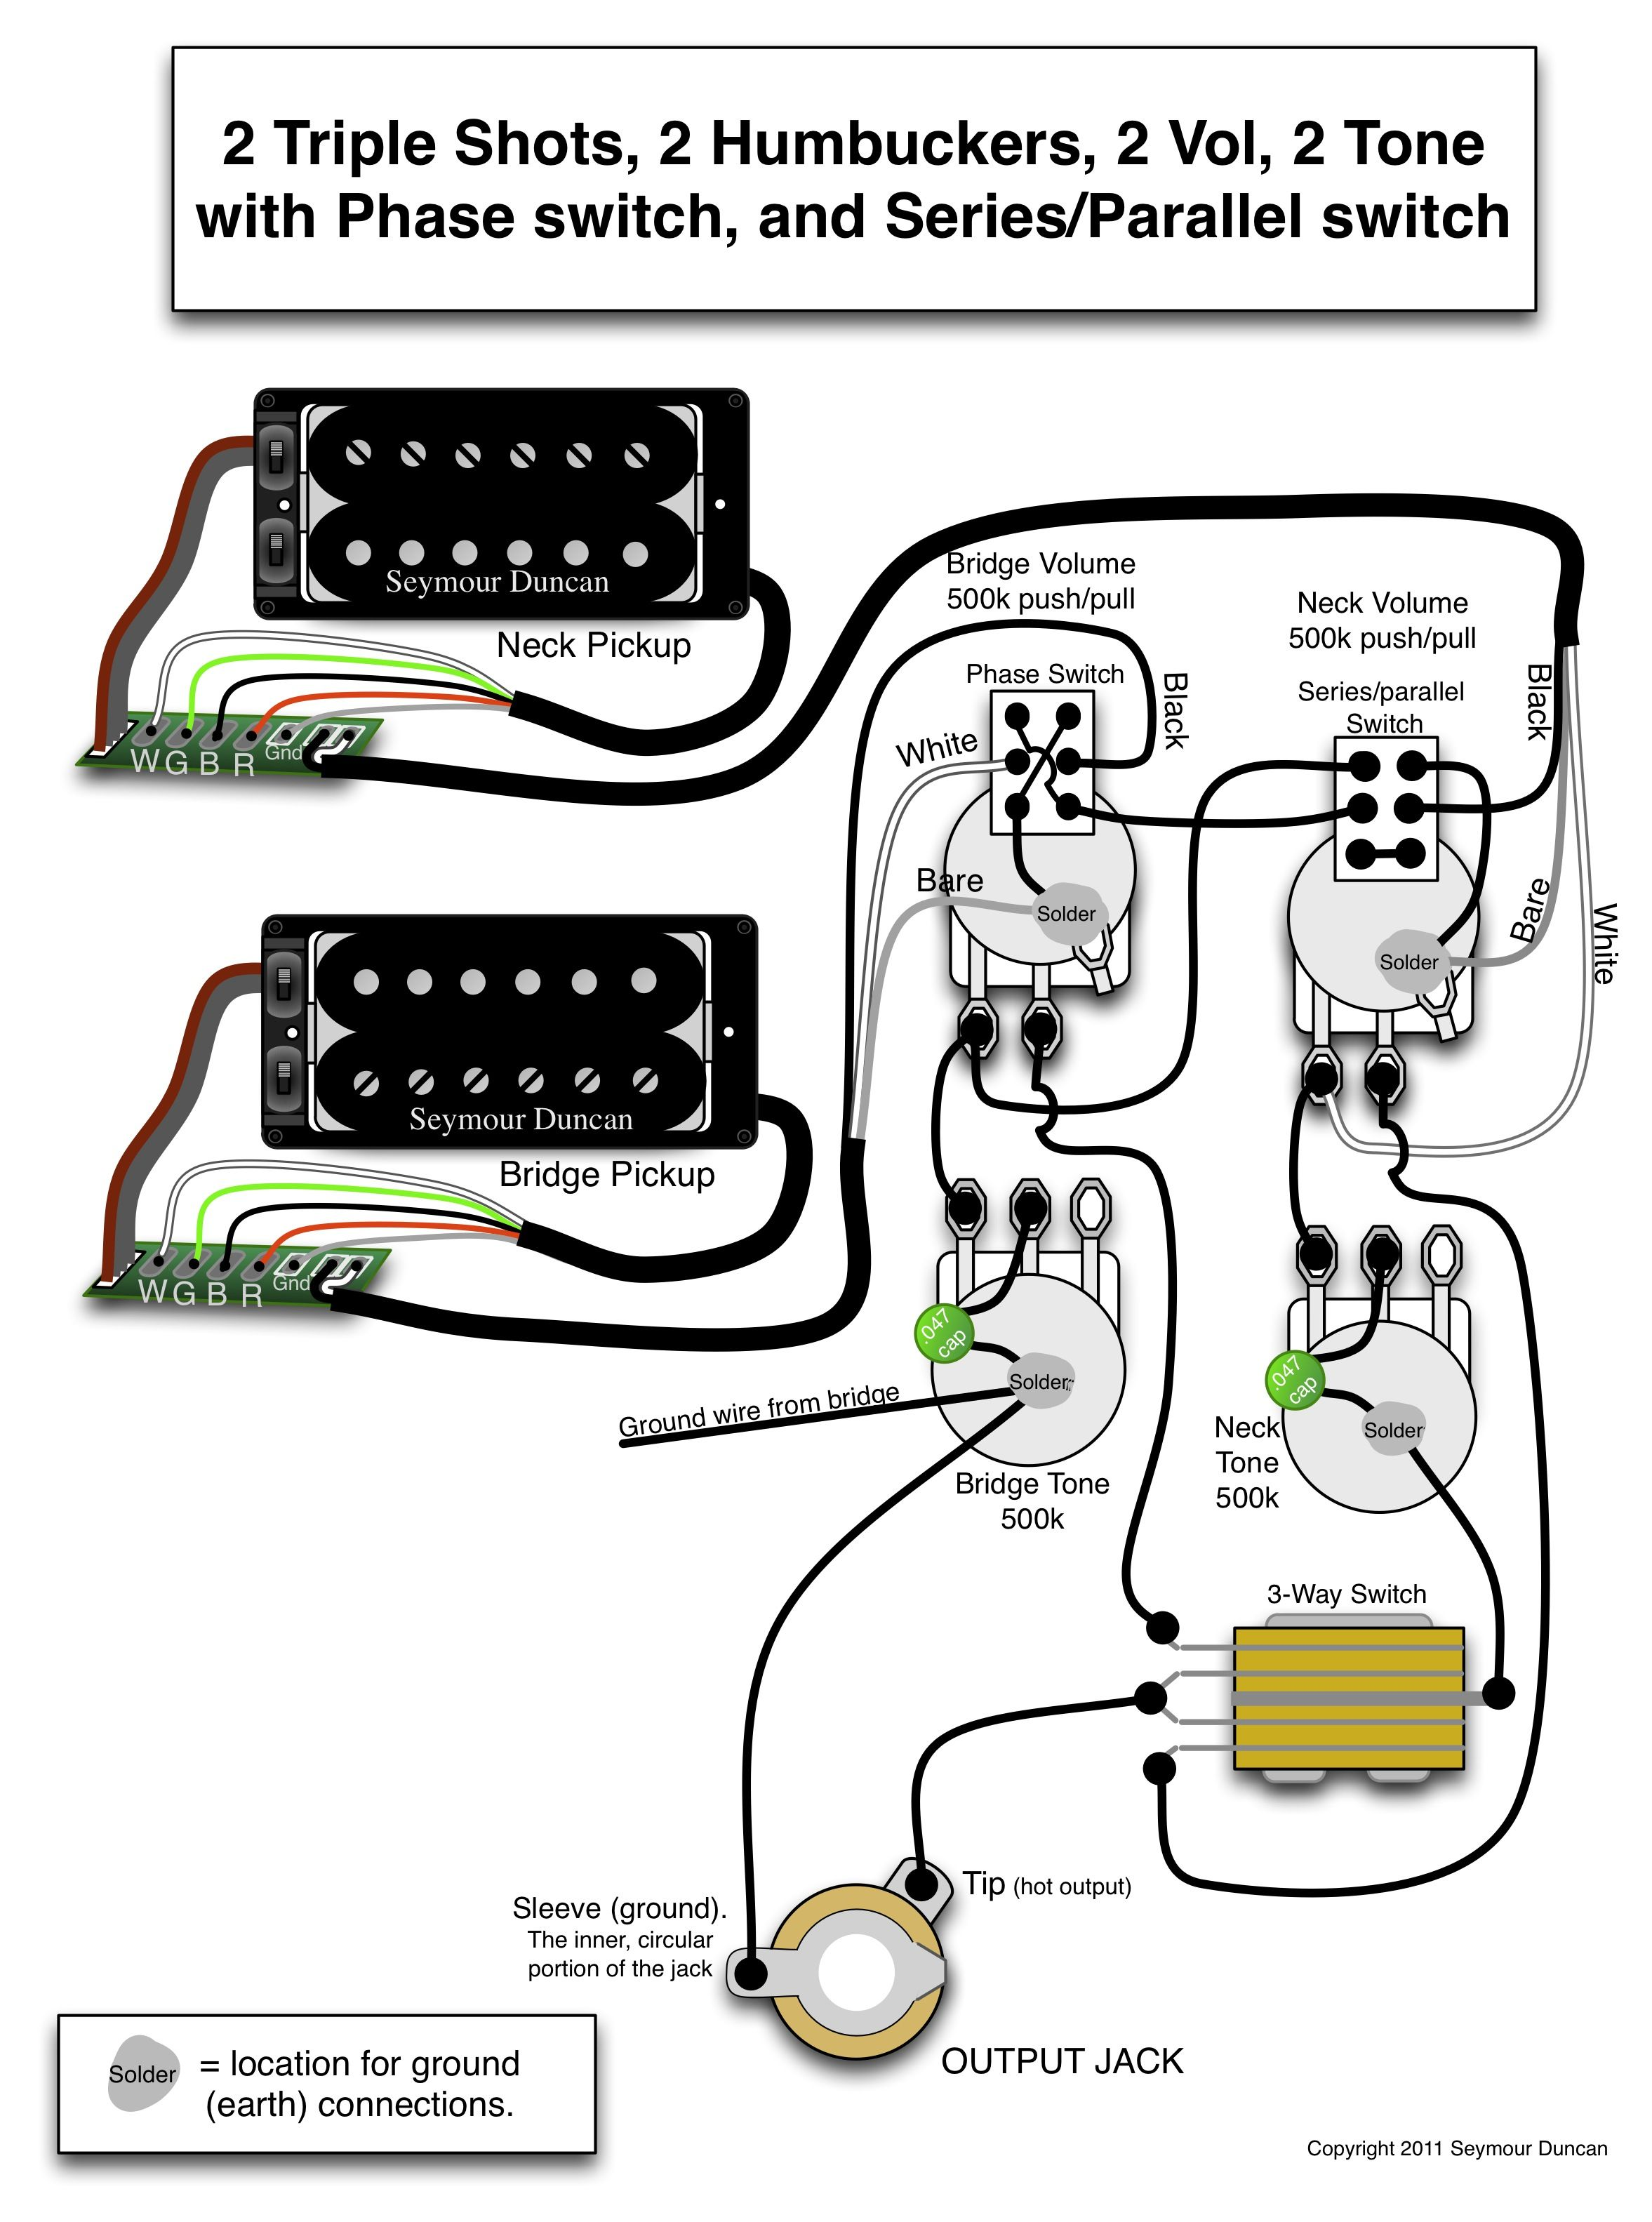 Seymour duncan wiring diagram 2 triple shots 2 humbuckers 2 seymour duncan wiring diagram 2 triple shots 2 humbuckers 2 vol 2 cheapraybanclubmaster Images